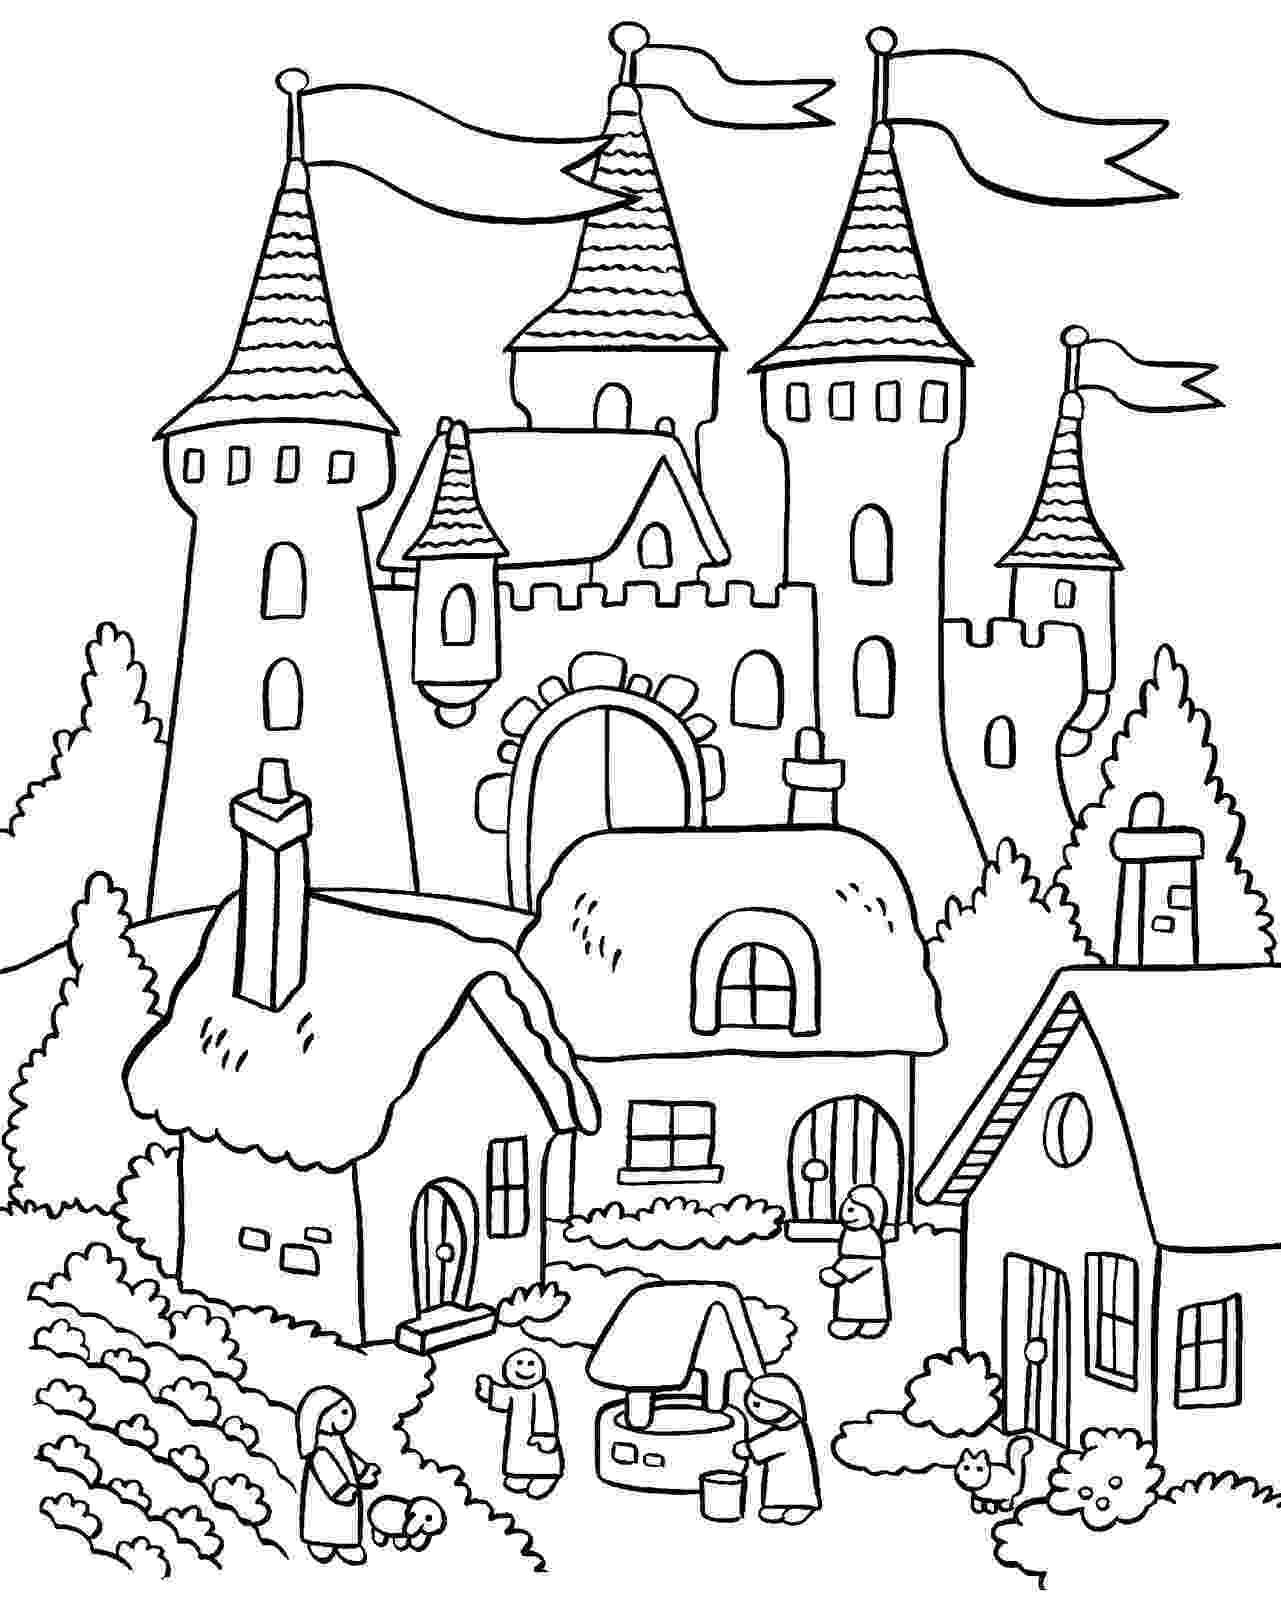 coloring page house log cabin coloring page clipart panda free clipart images page house coloring